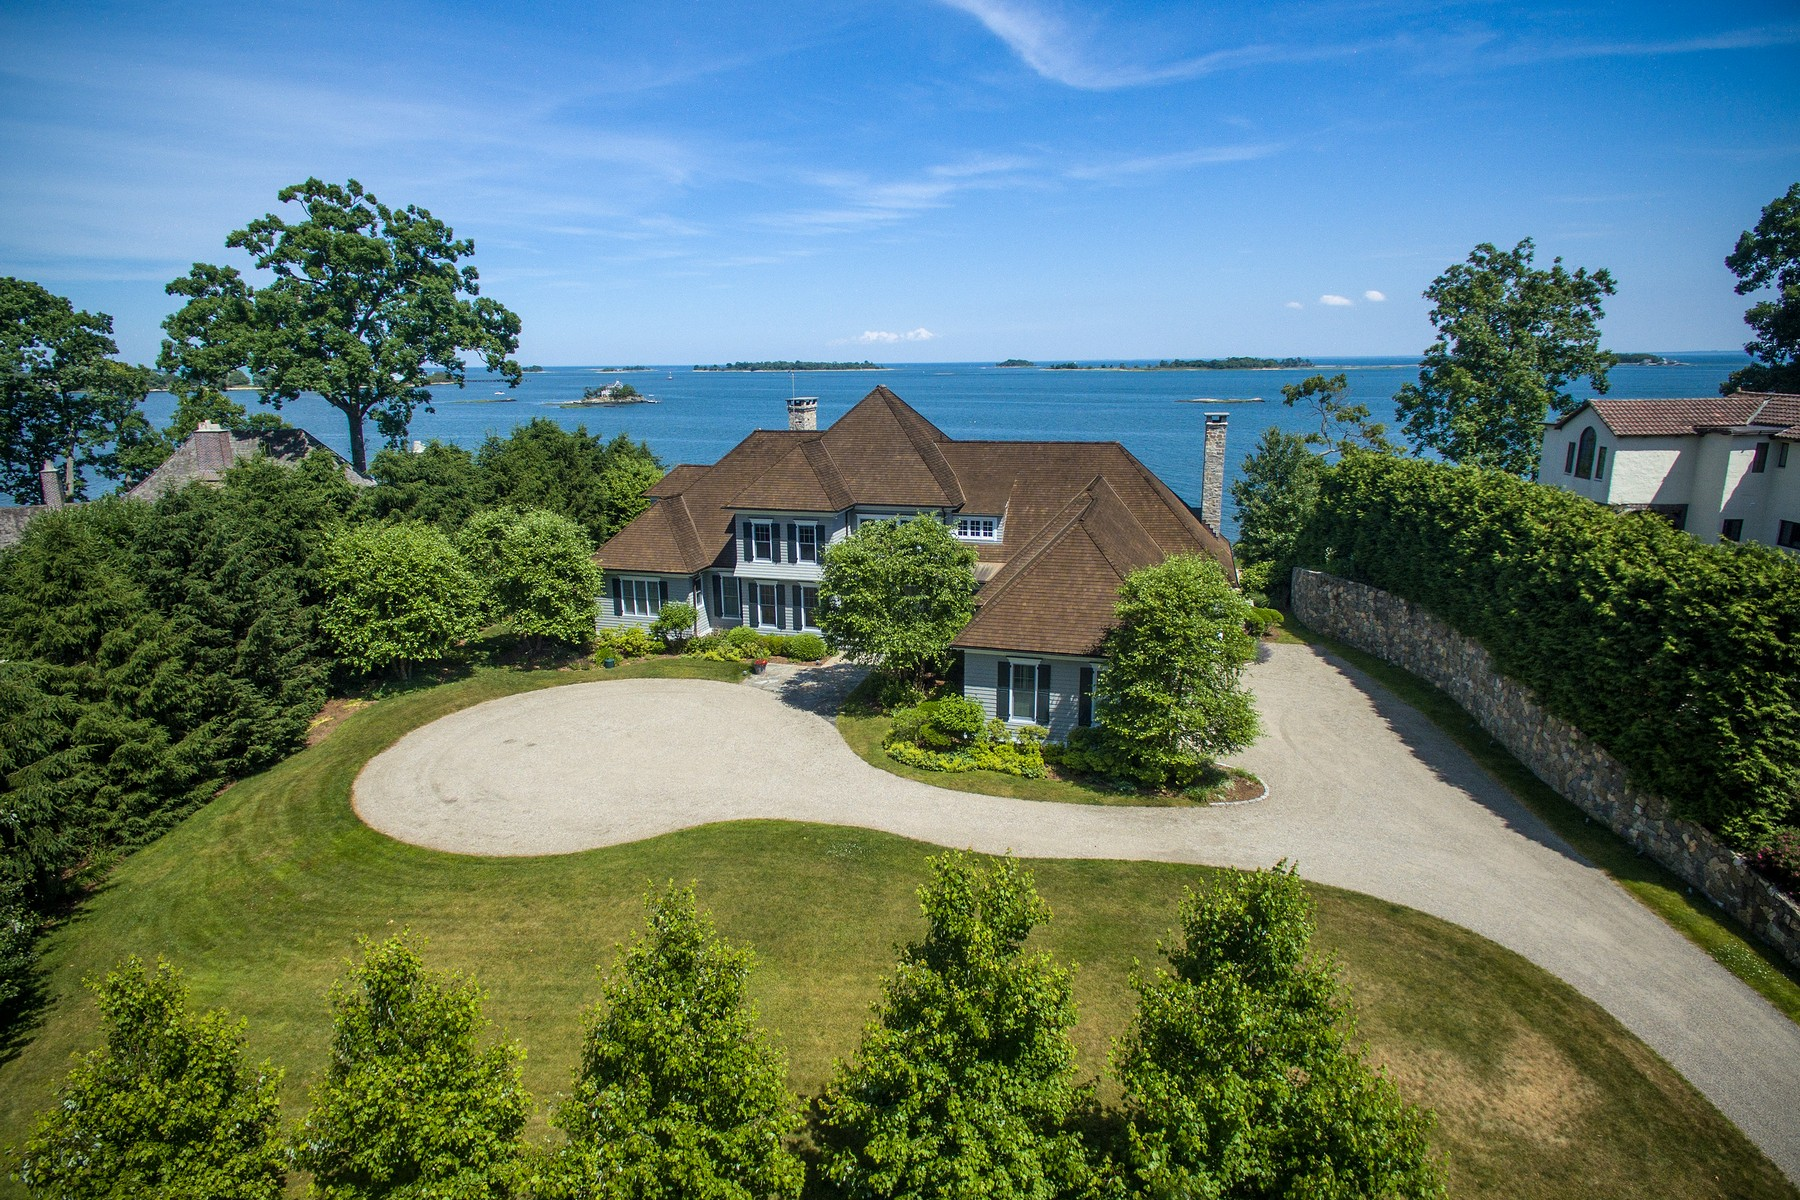 Casa Unifamiliar por un Venta en Wilson Point - Spectacular Waterviews 10 Woodland Road Norwalk, Connecticut, 06854 Estados Unidos